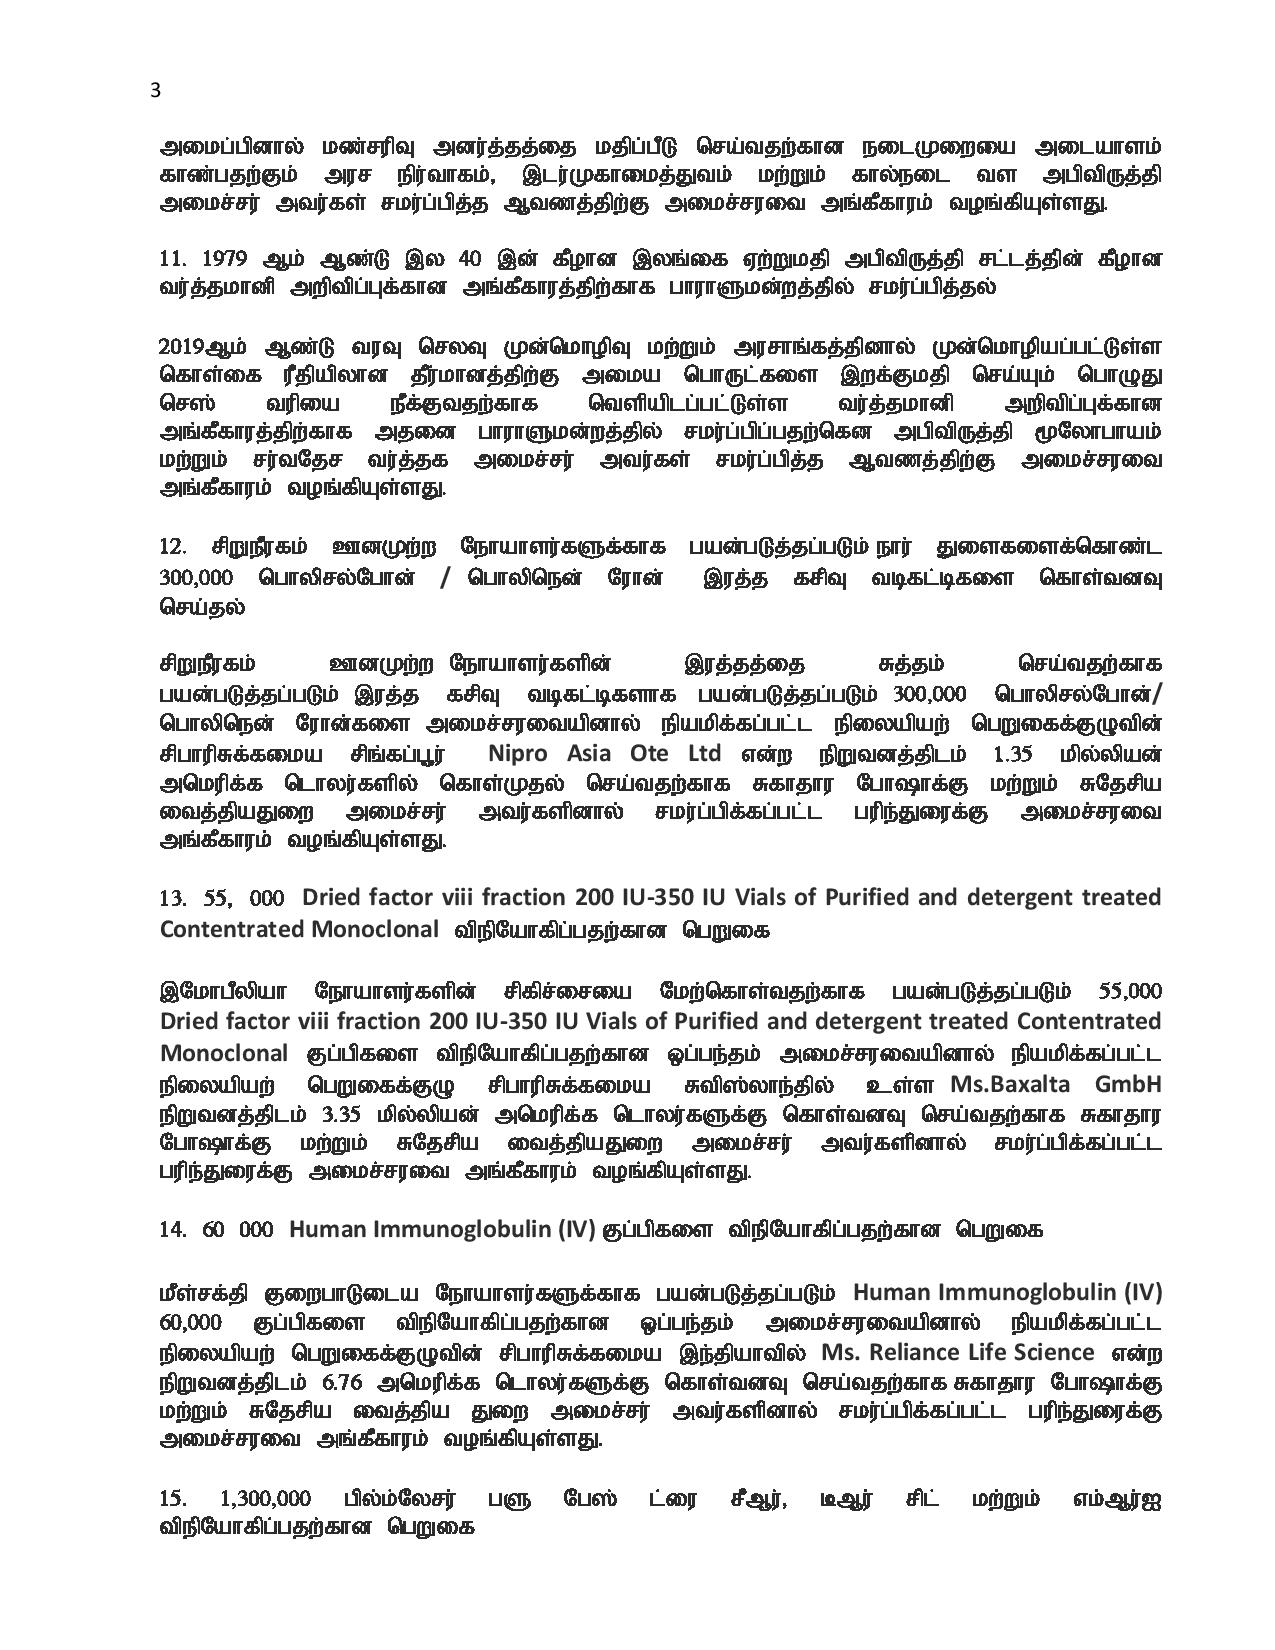 Cabinet Decisions on 05.11.2019 Tamil page 003